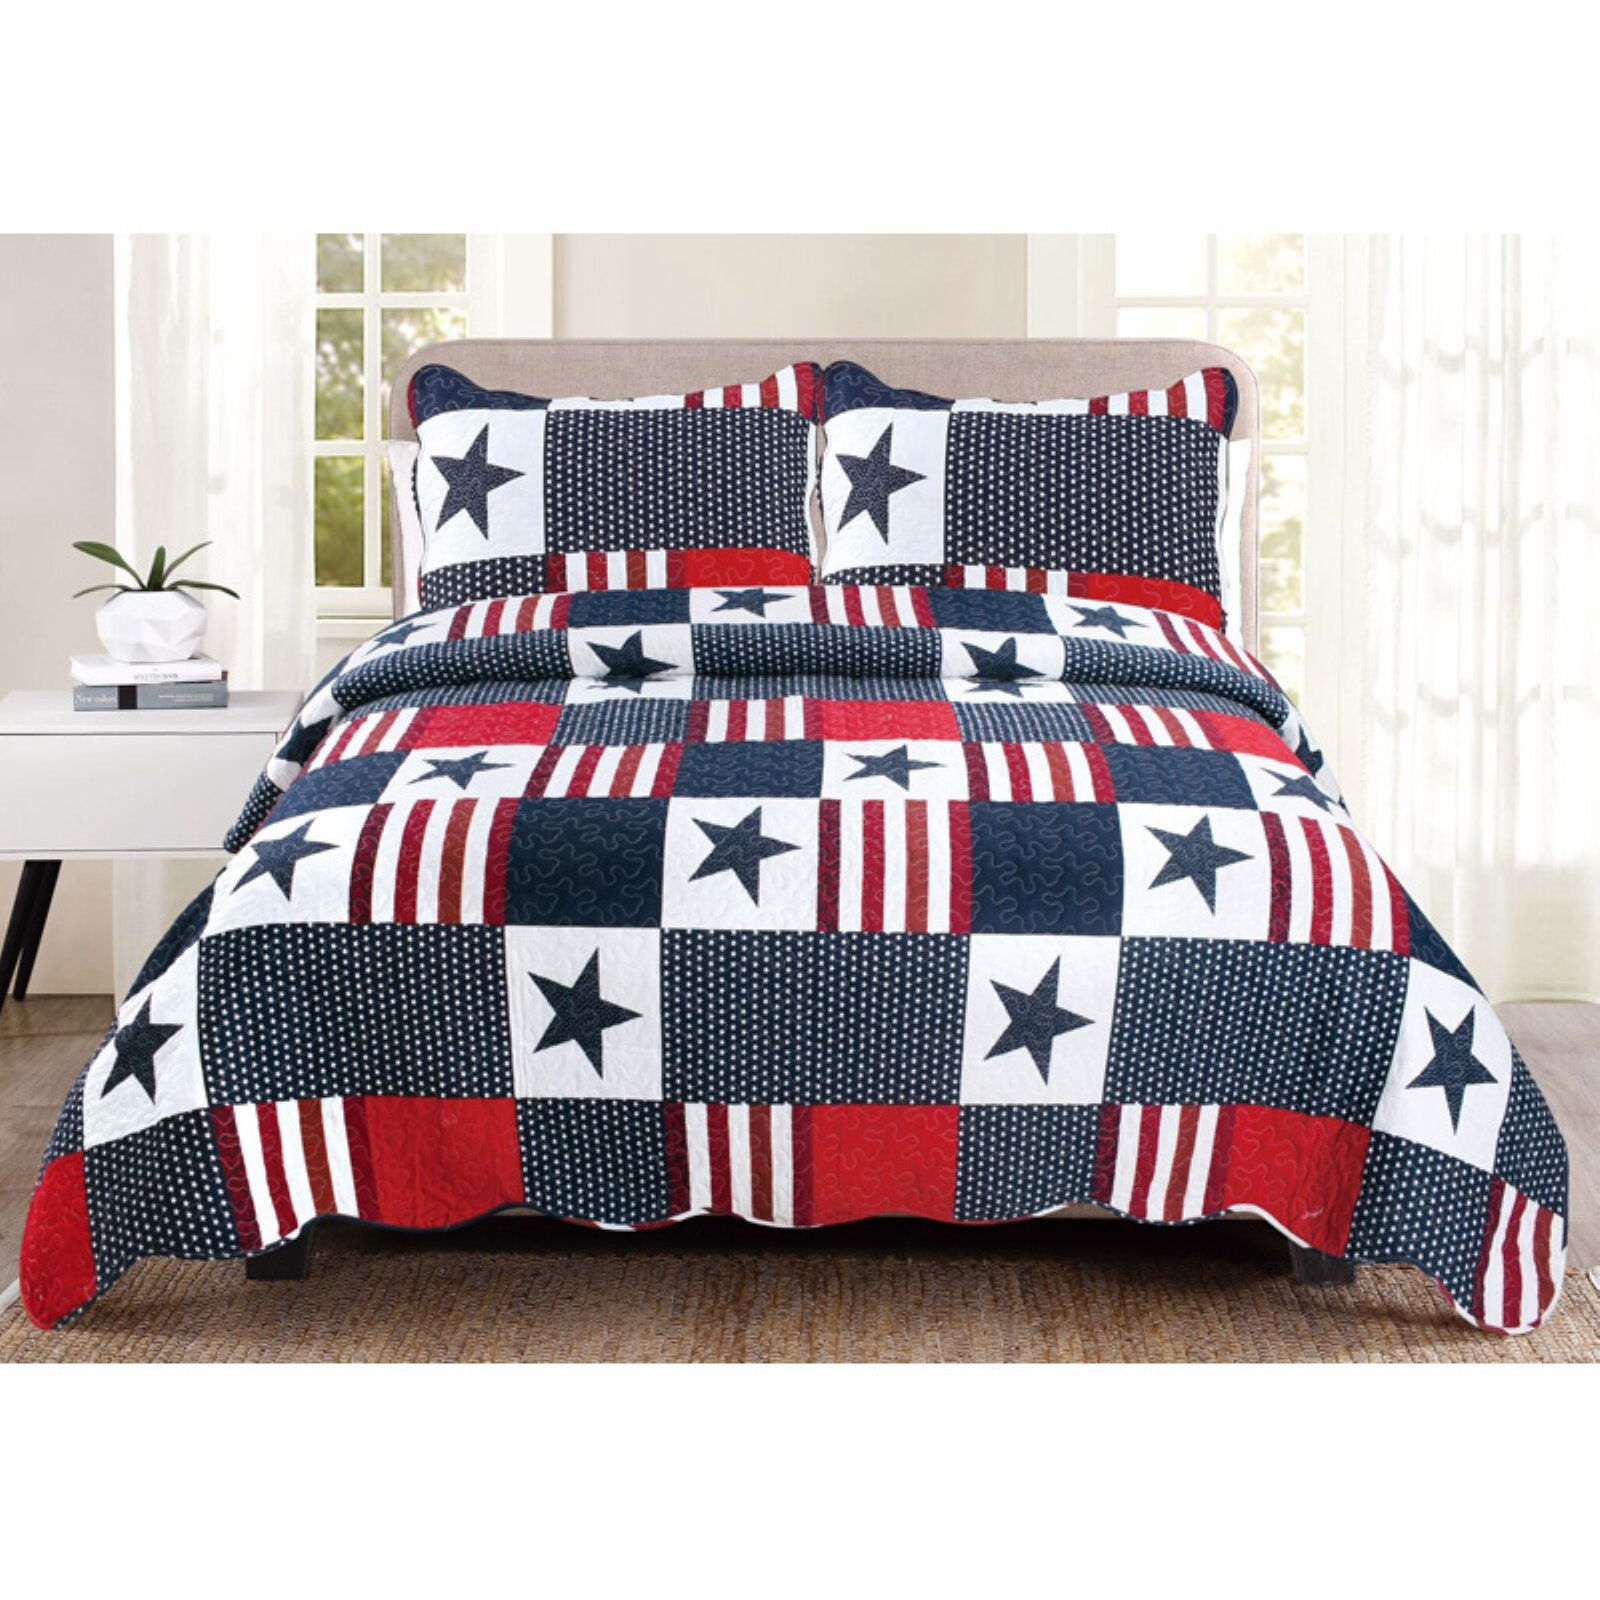 Americana Quilt Set by United Curtain, Size King is part of Quilt sets, Mattress furniture, King quilt sets, Comforters, Luxury bedding, Sports bedding - polyester  QAMKMU